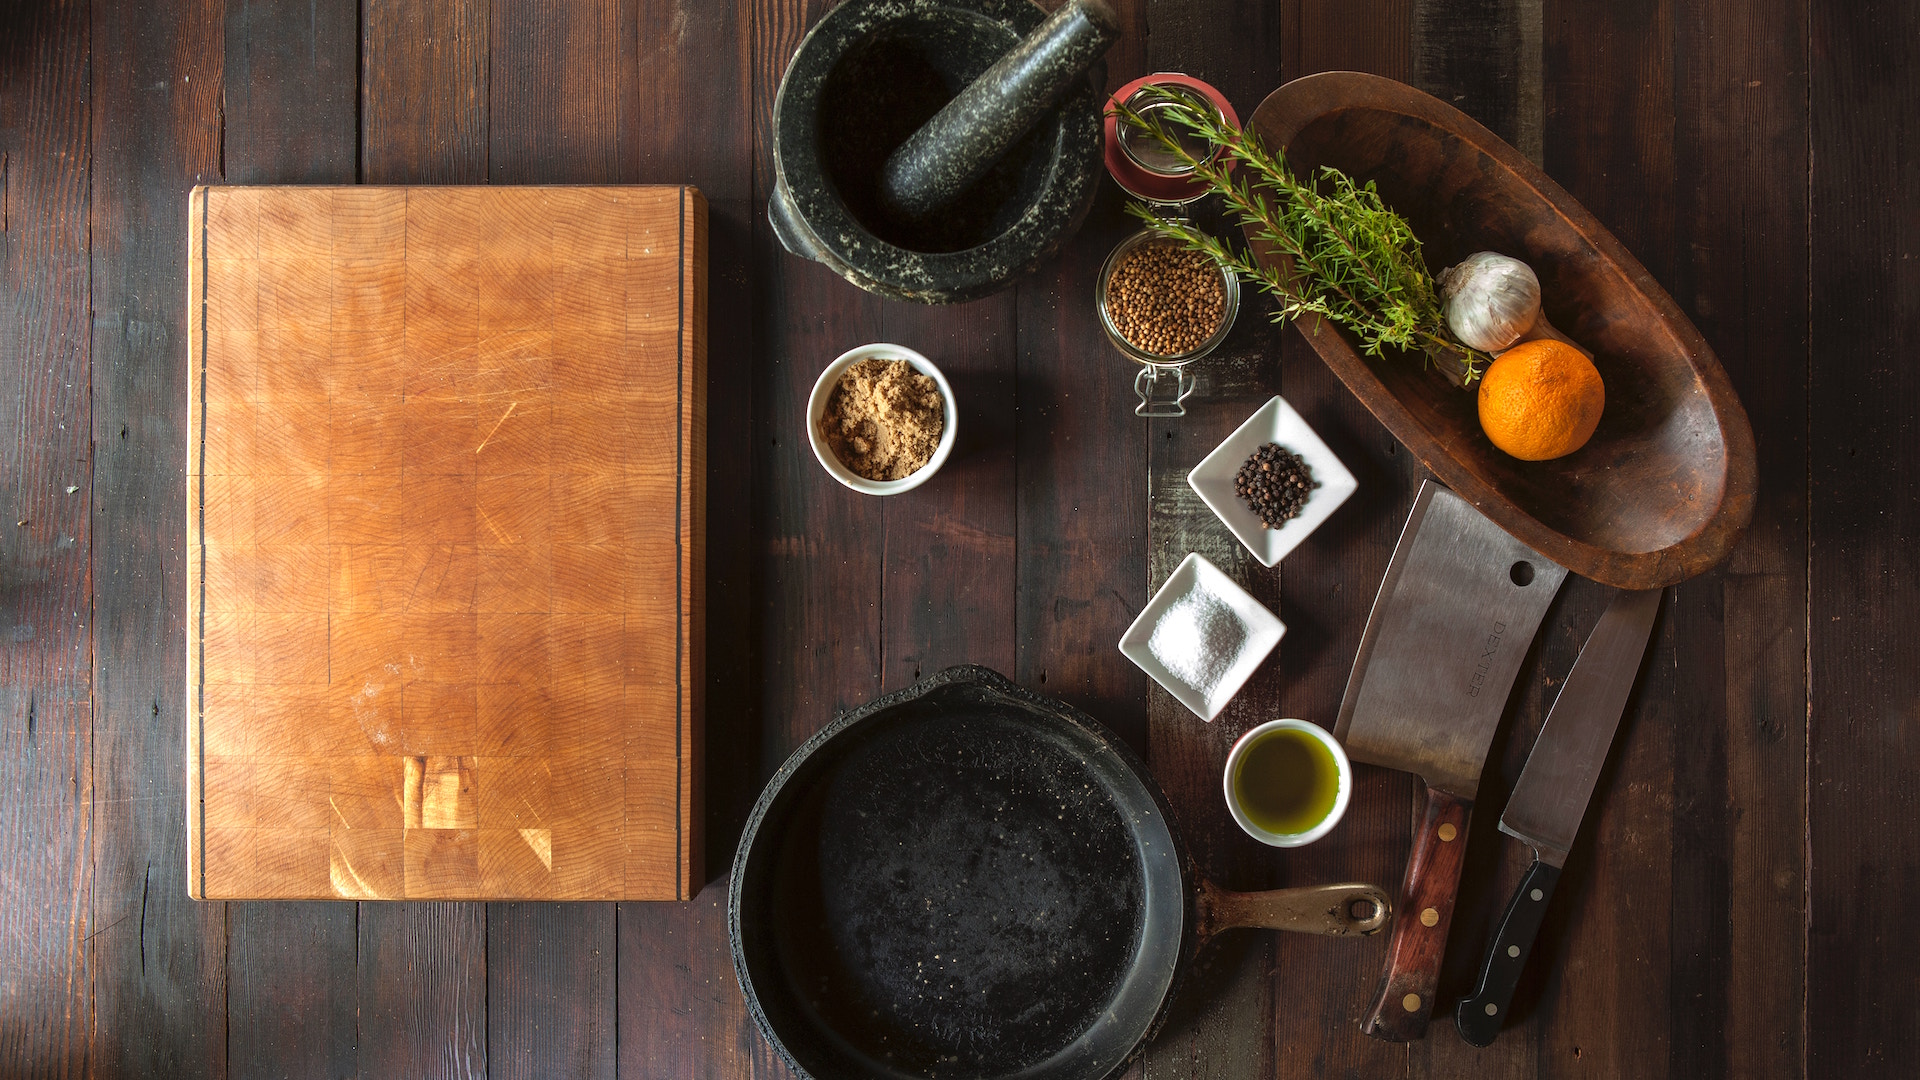 Why French Cuisine is Good for Content Marketing